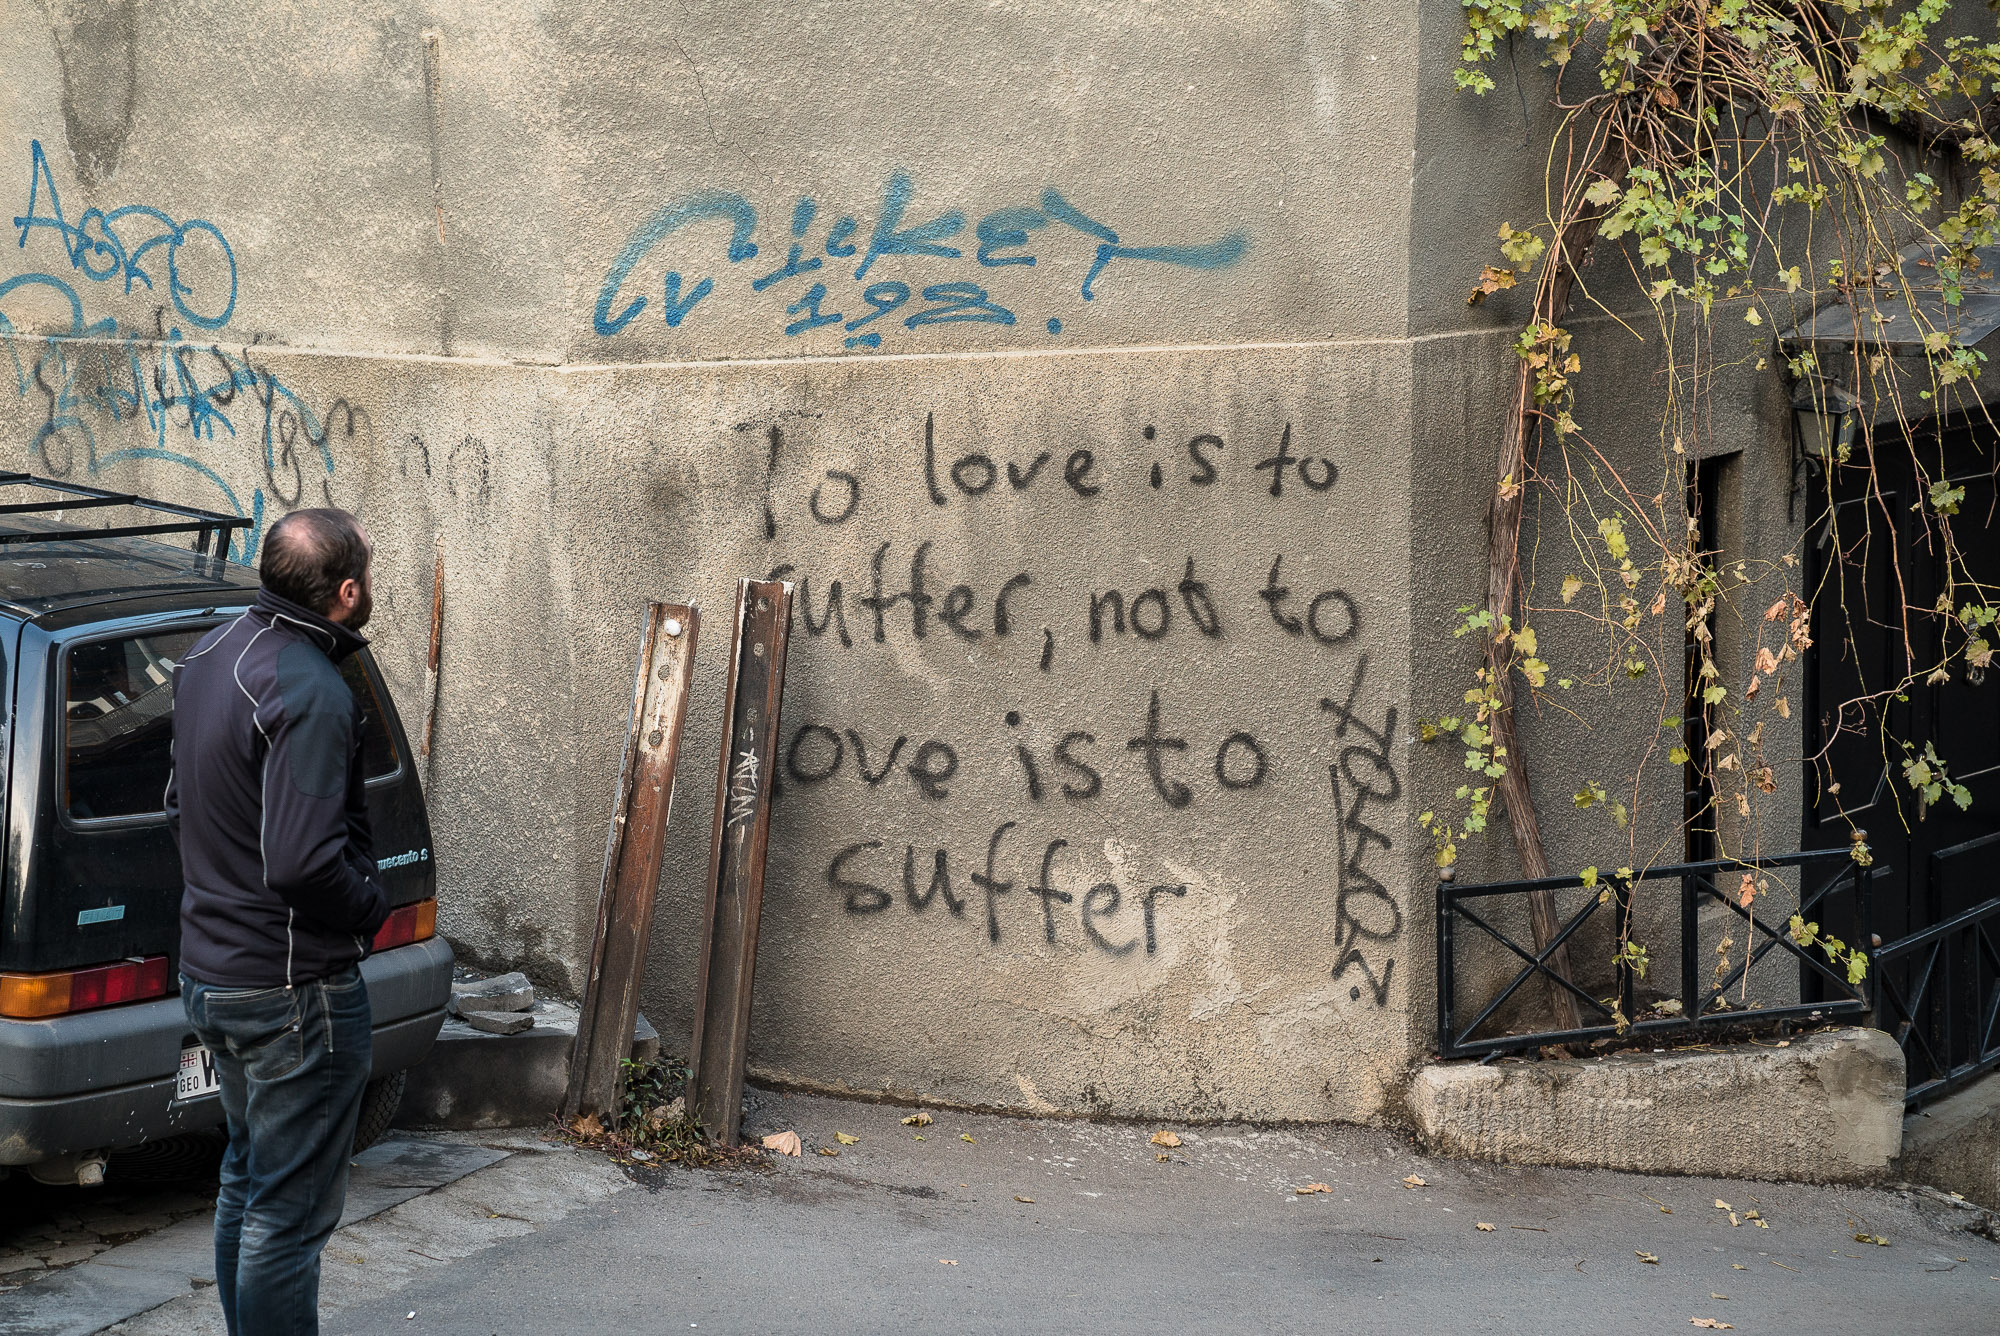 To Love Is To Suffer